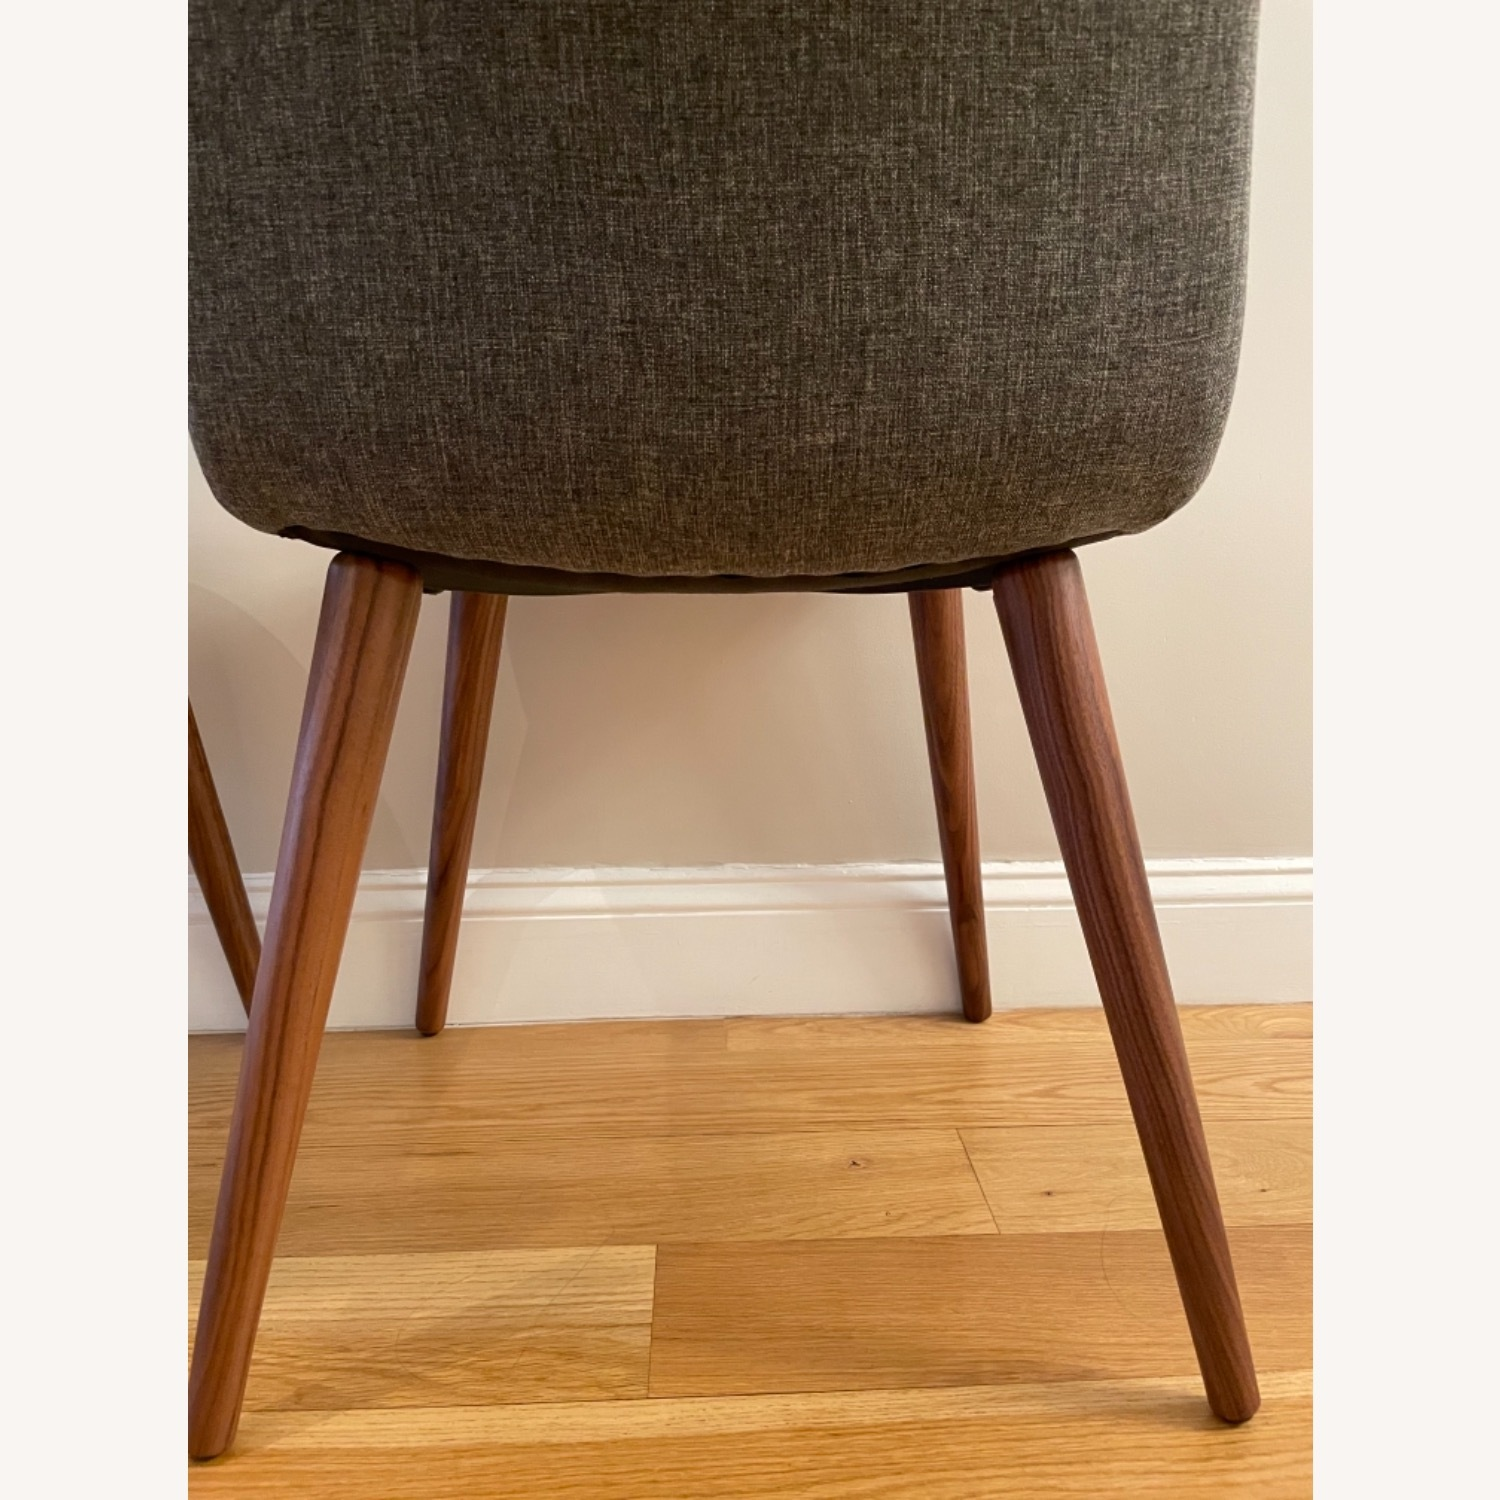 Design Within Reach Bacco Chairs - image-7